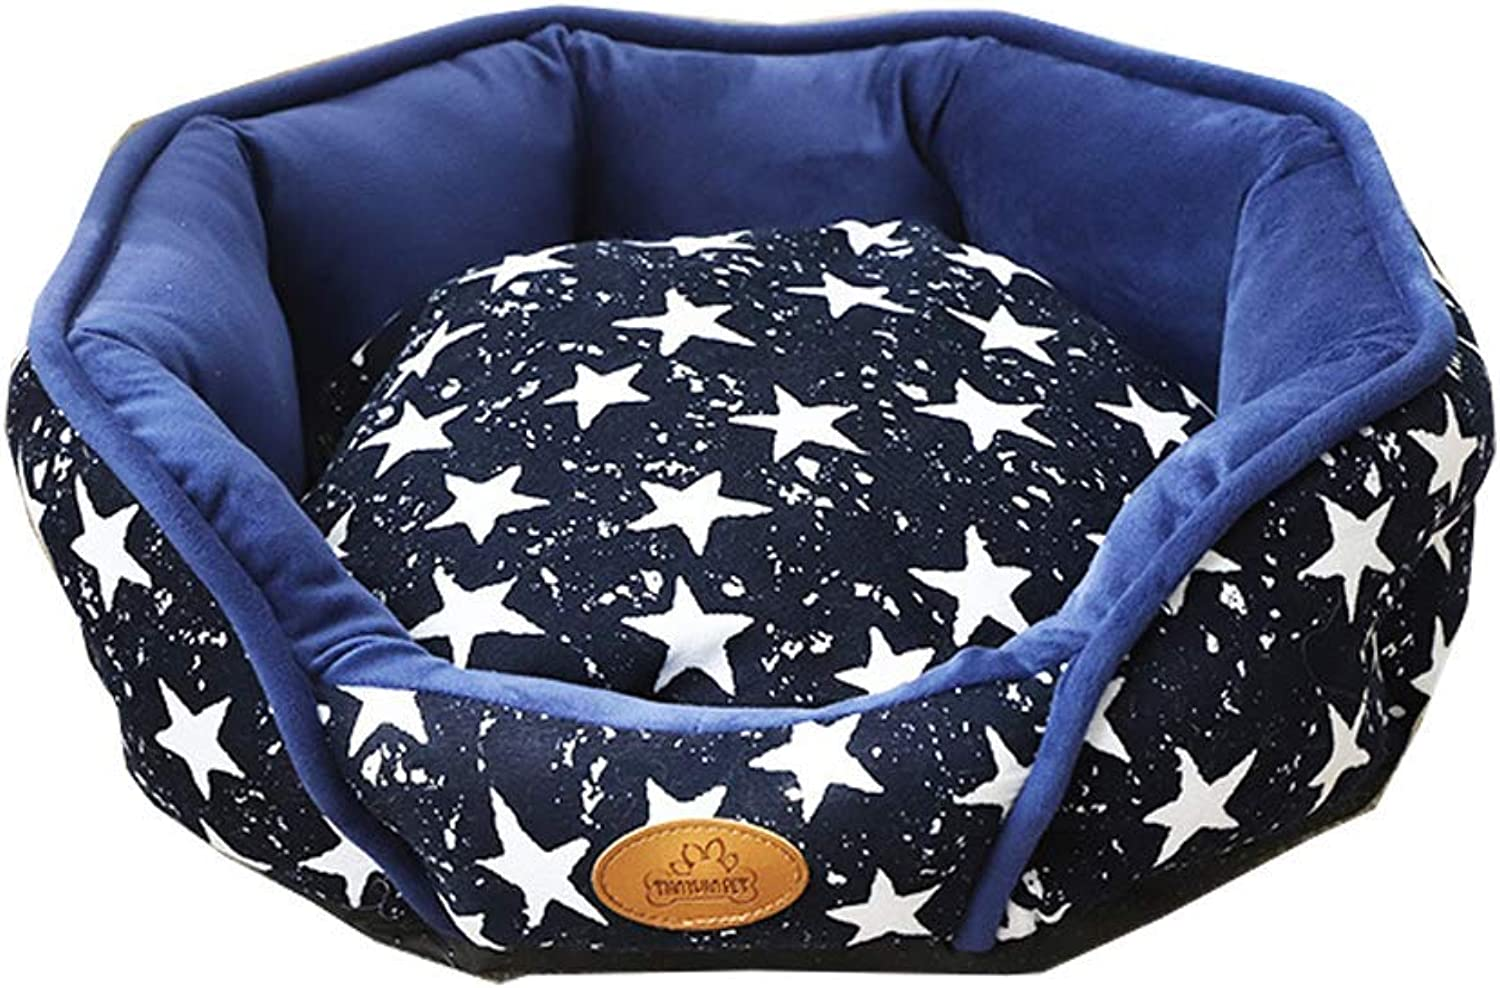 Premium Dog's Bed, Round Pet Bed Memory Foam Pillow Top Reversible Cat and Dog Bed with Removable (color   bluee, Size   L)